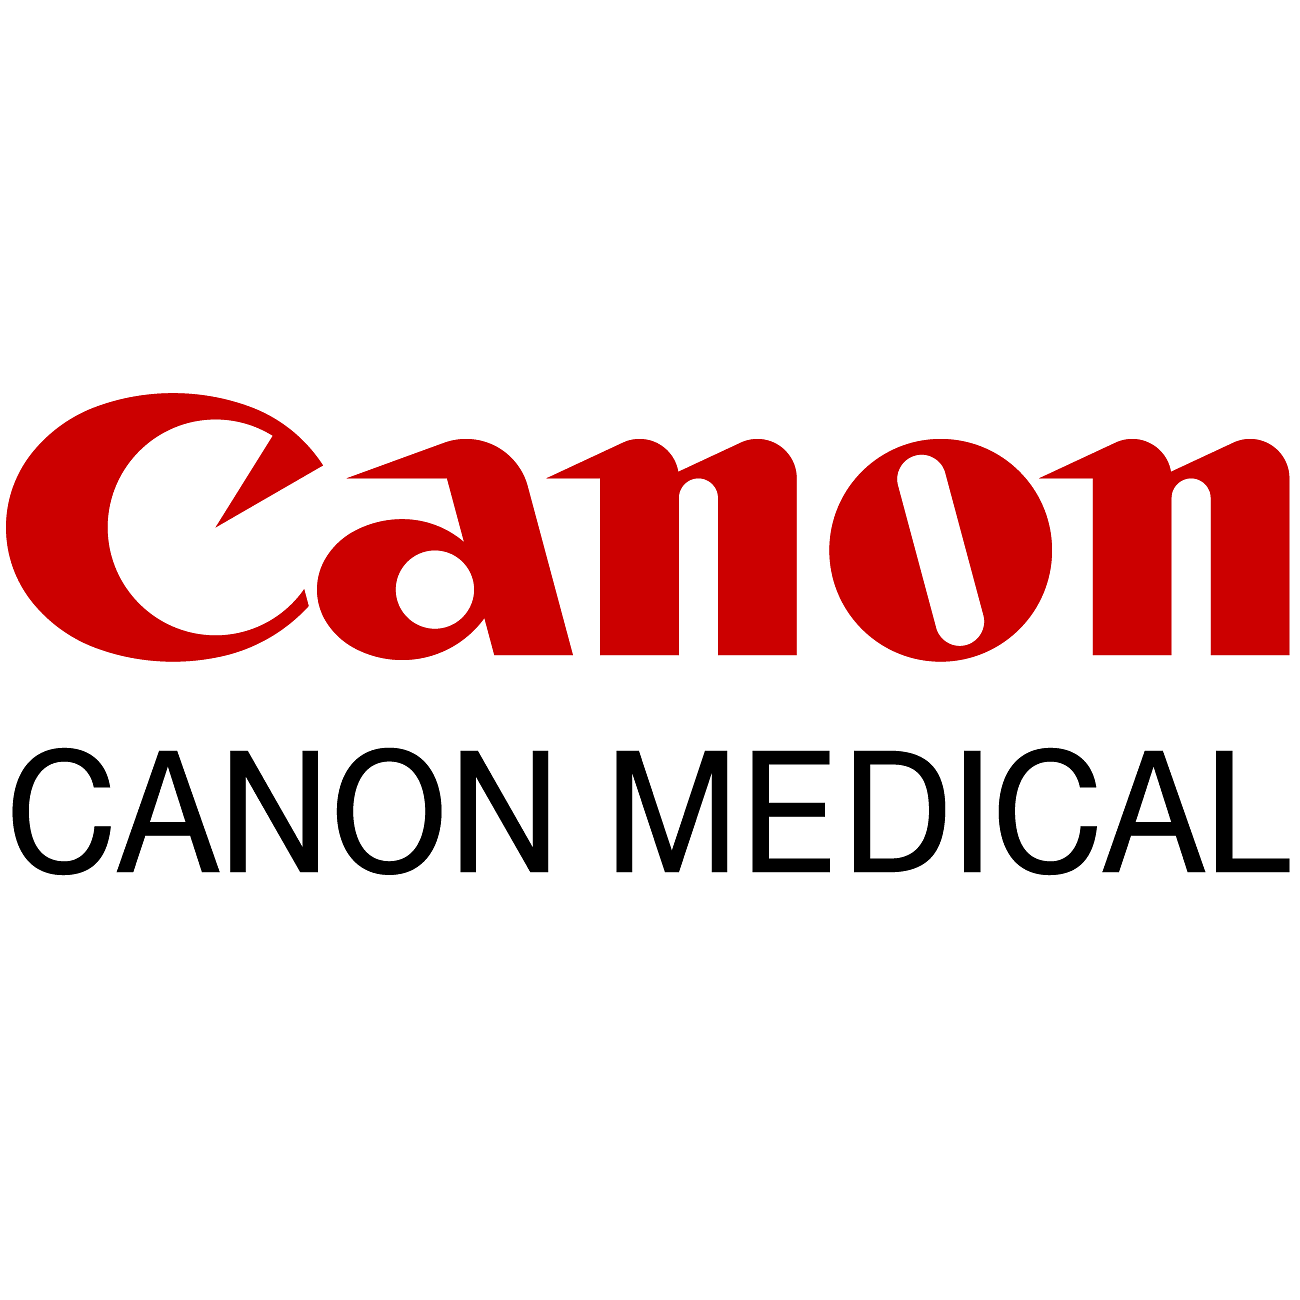 파일:canon_medical.png